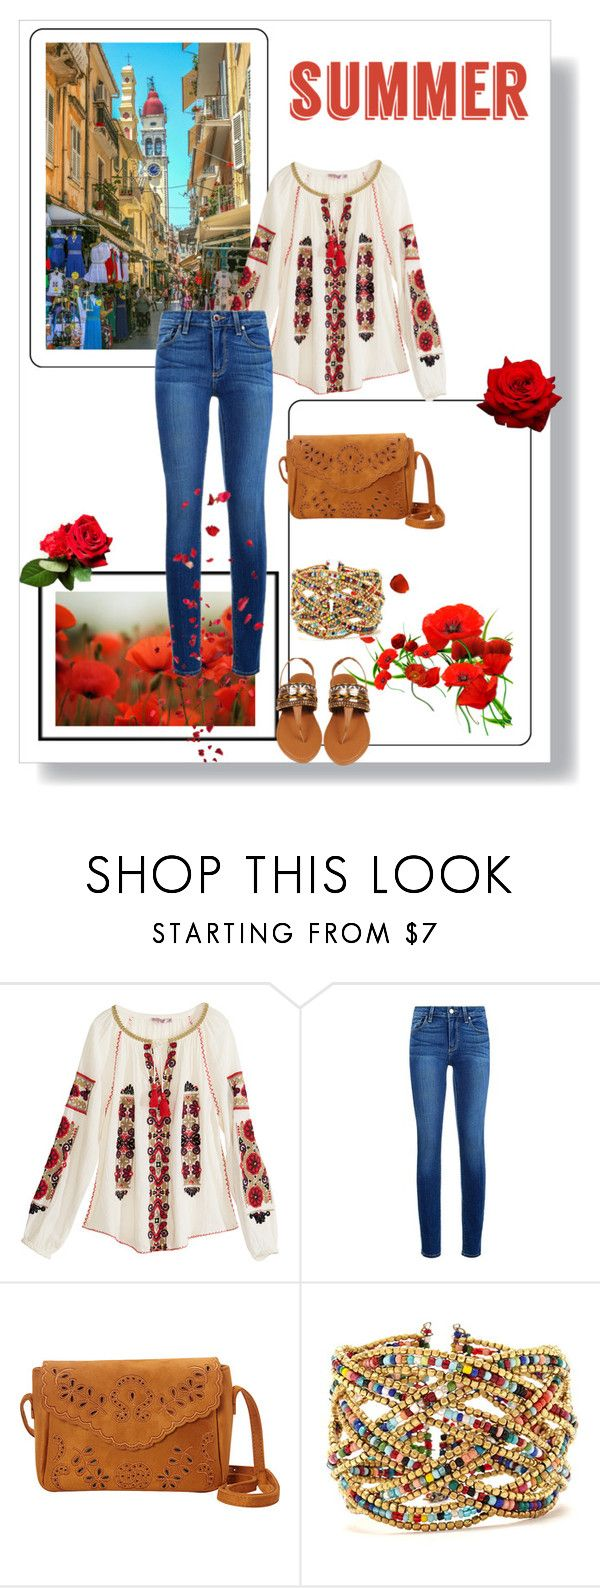 """""""Summer Sandals"""" by dezaval ❤ liked on Polyvore featuring Calypso St. Barth, Paige Denim, Nu-G, Forever 21, Dolce&Gabbana and summersandals"""